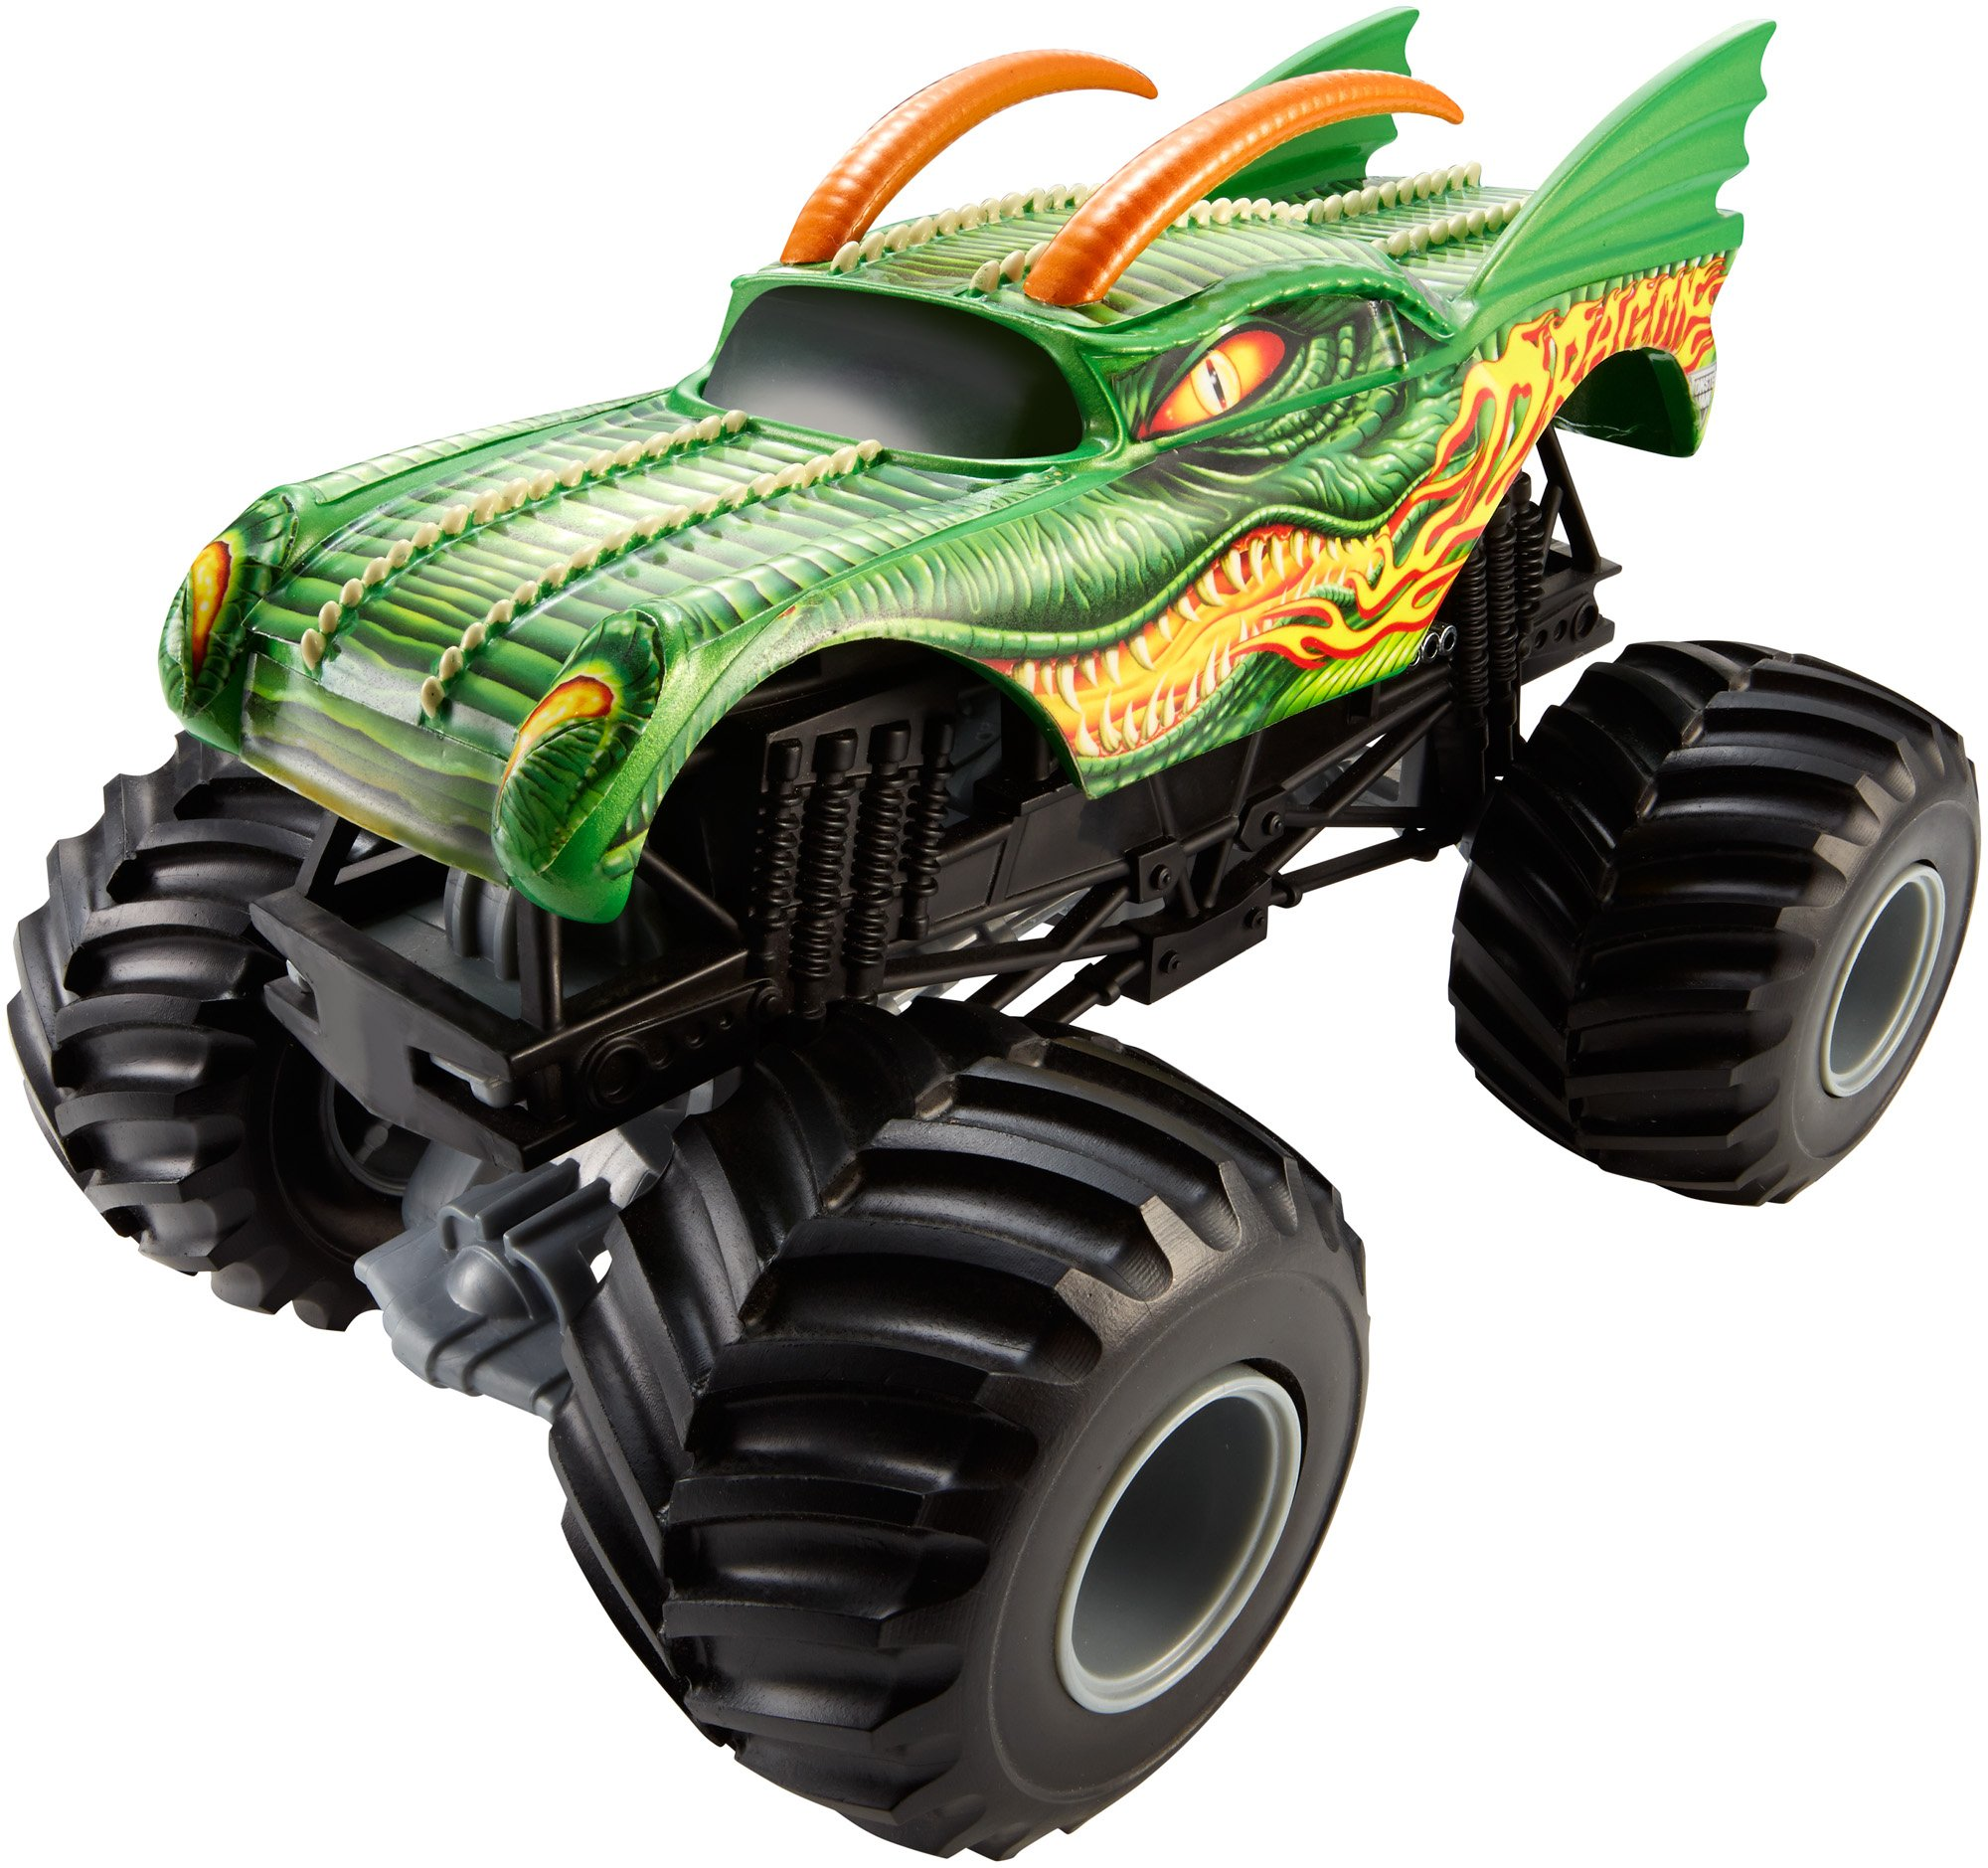 Hot Wheels Monster Jam 1:24 Scale Dragon Vehicle